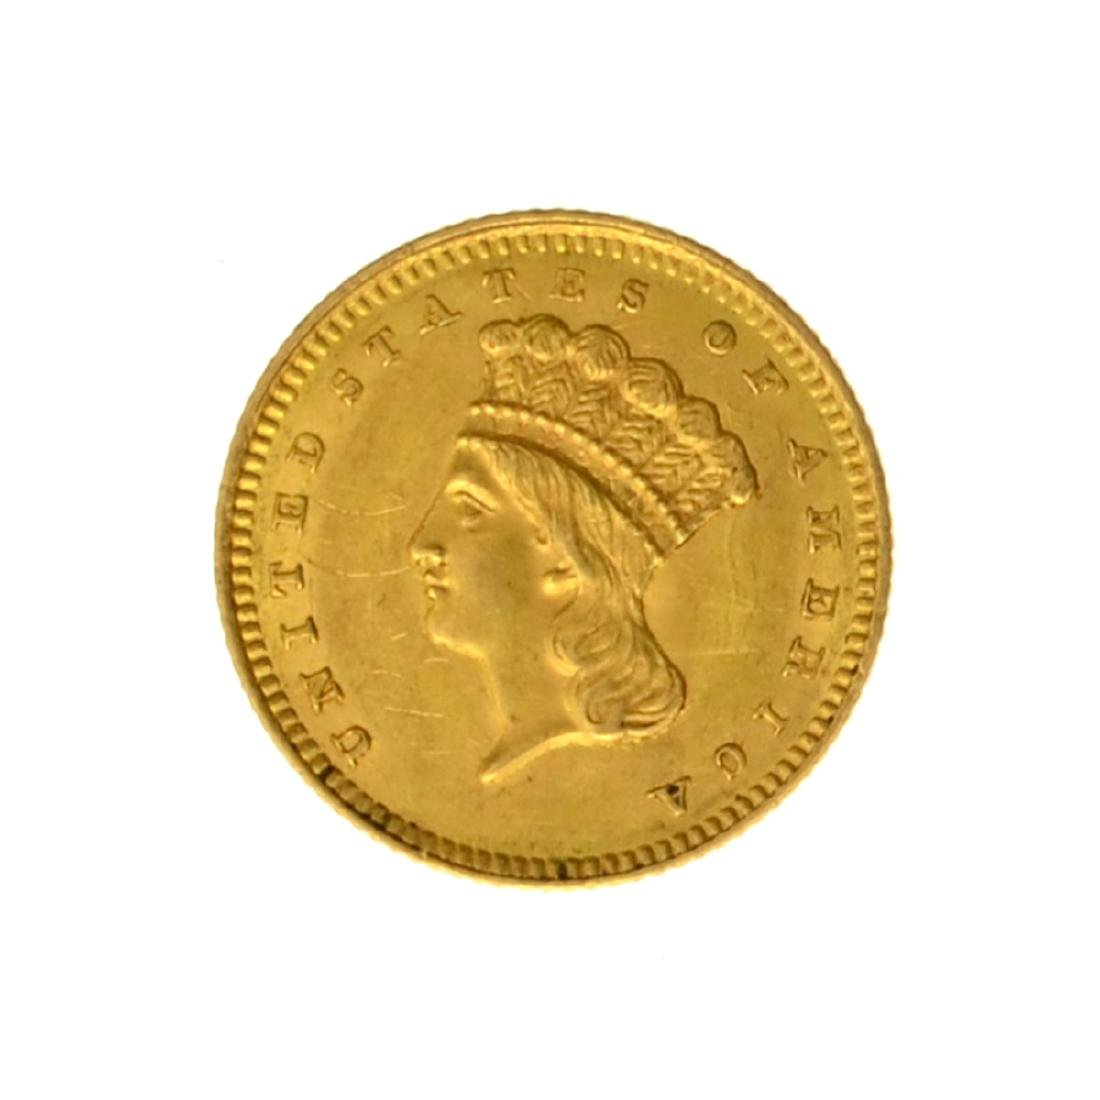 1861 $1 U.S. Indian Head Gold Coin - Great Investment -